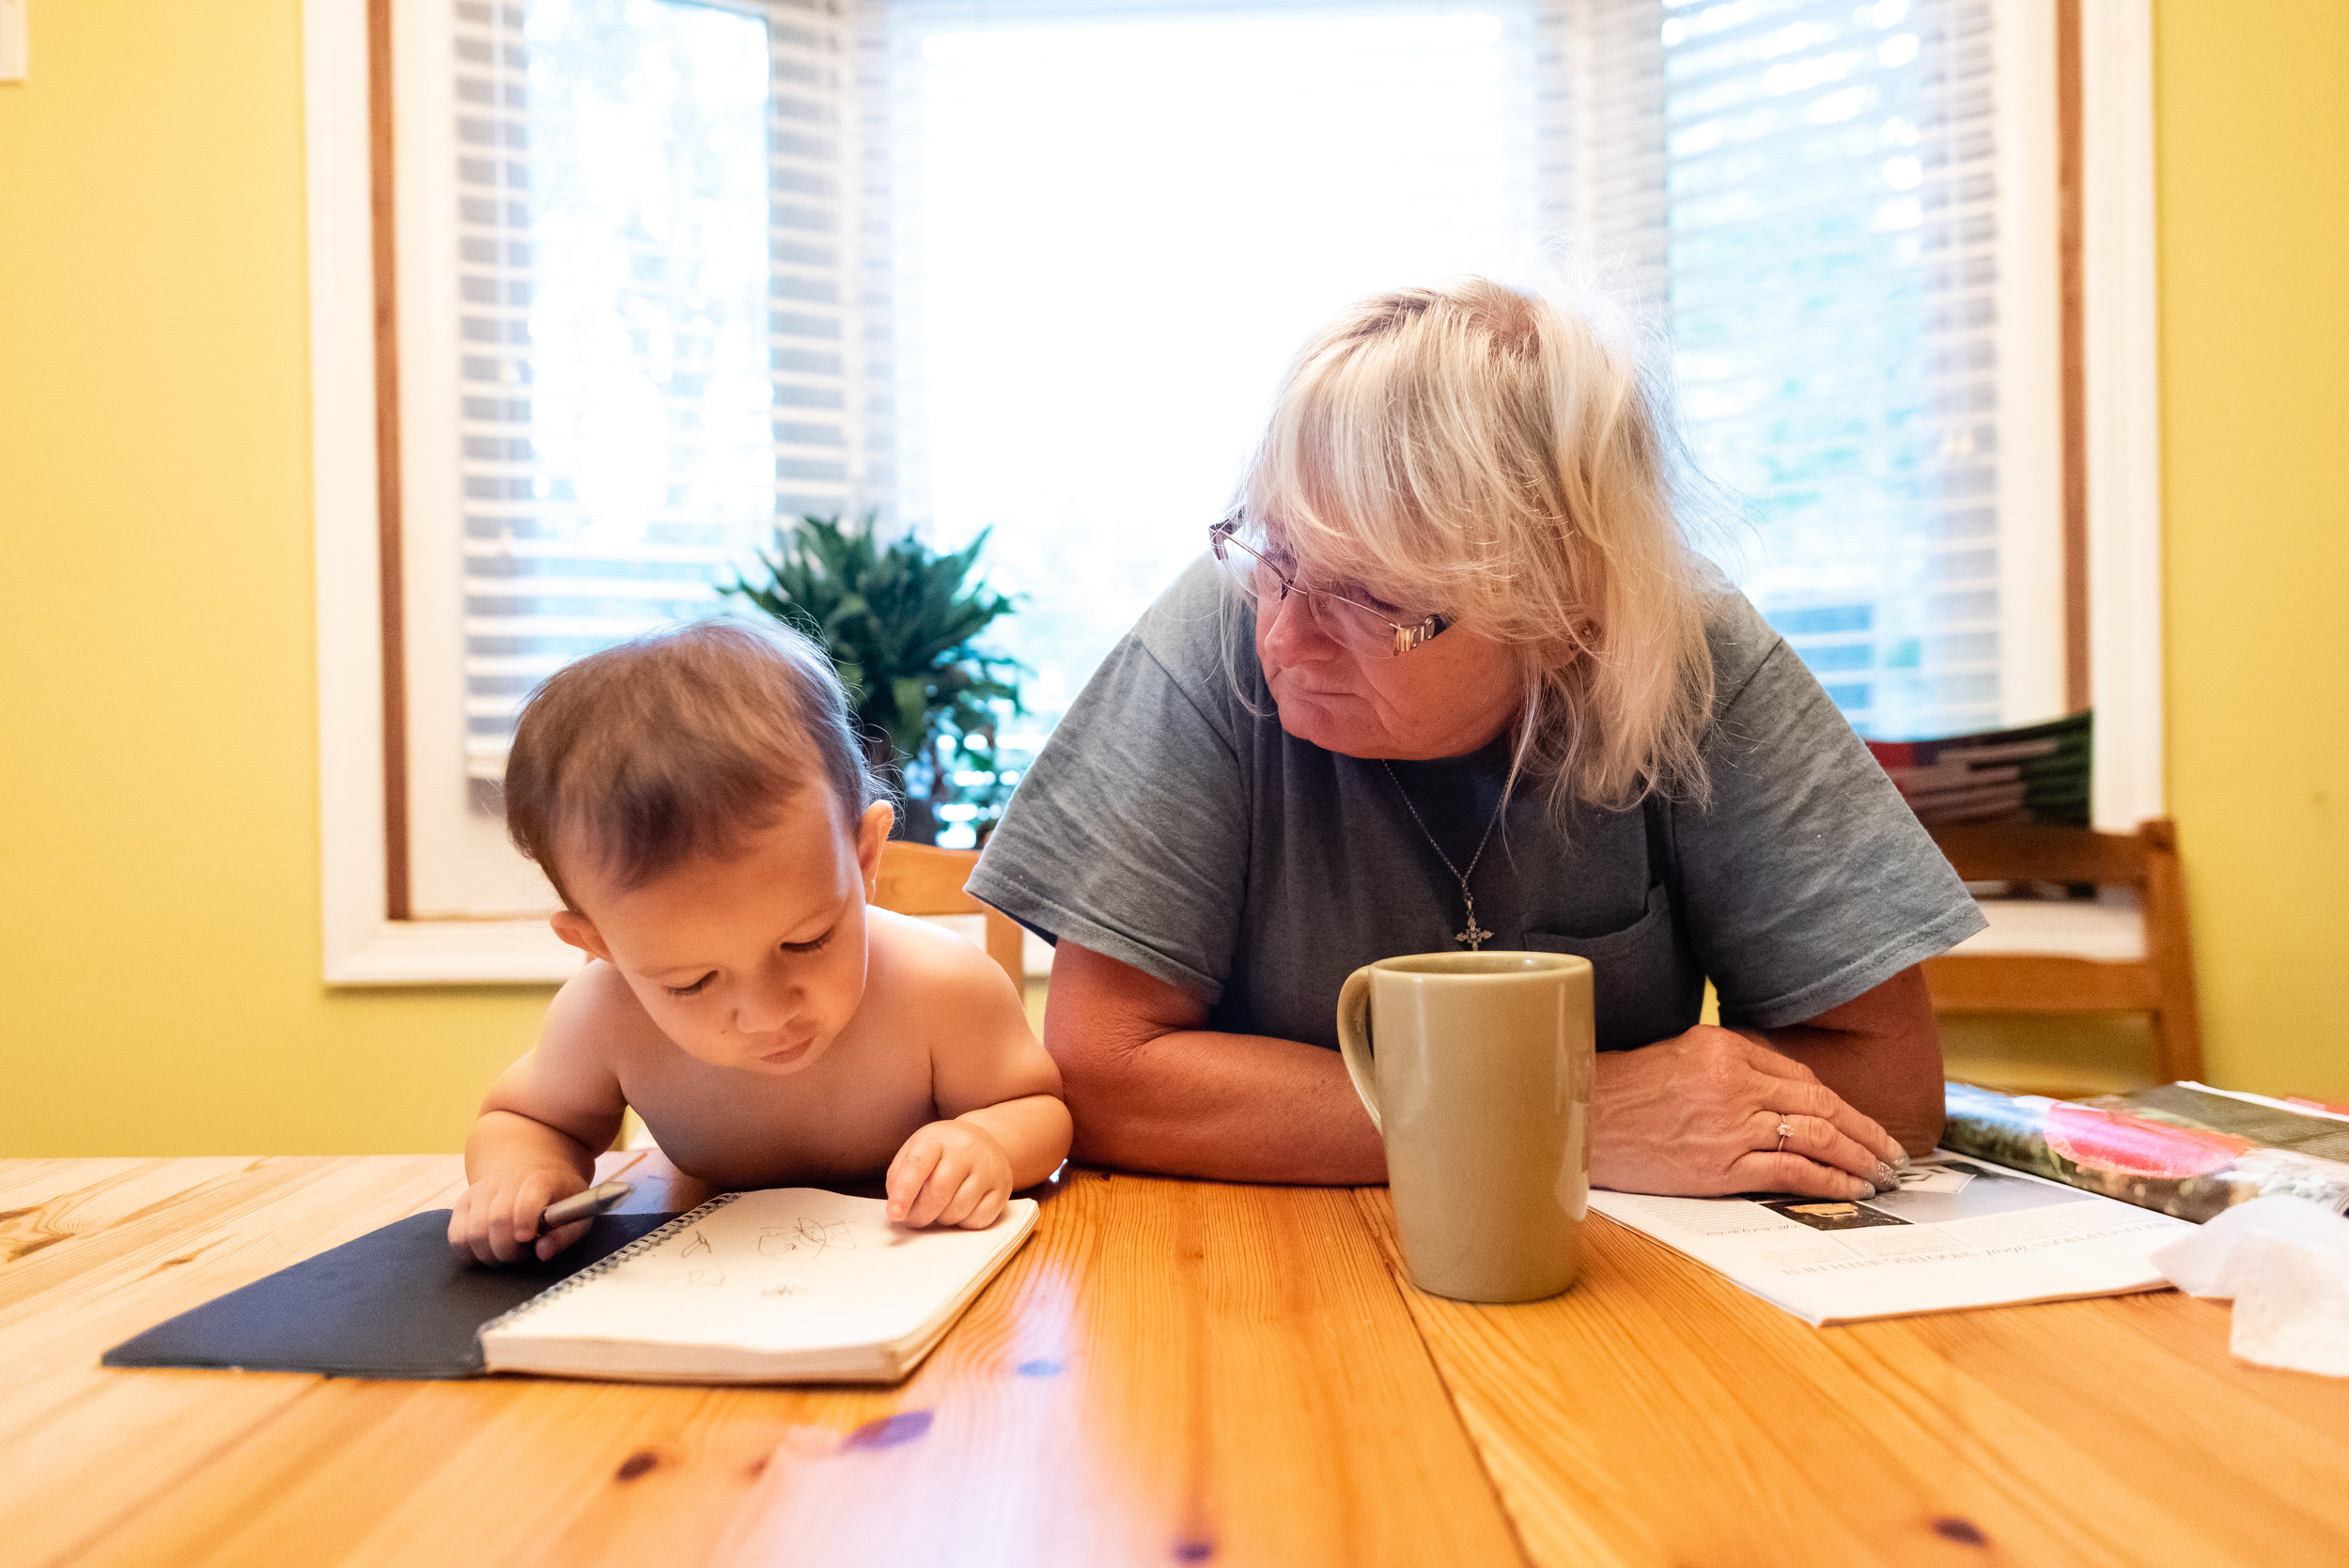 Grandma and toddler enjoying breakfast together by Northern Virginia Family Photographer Nicole Sanchez